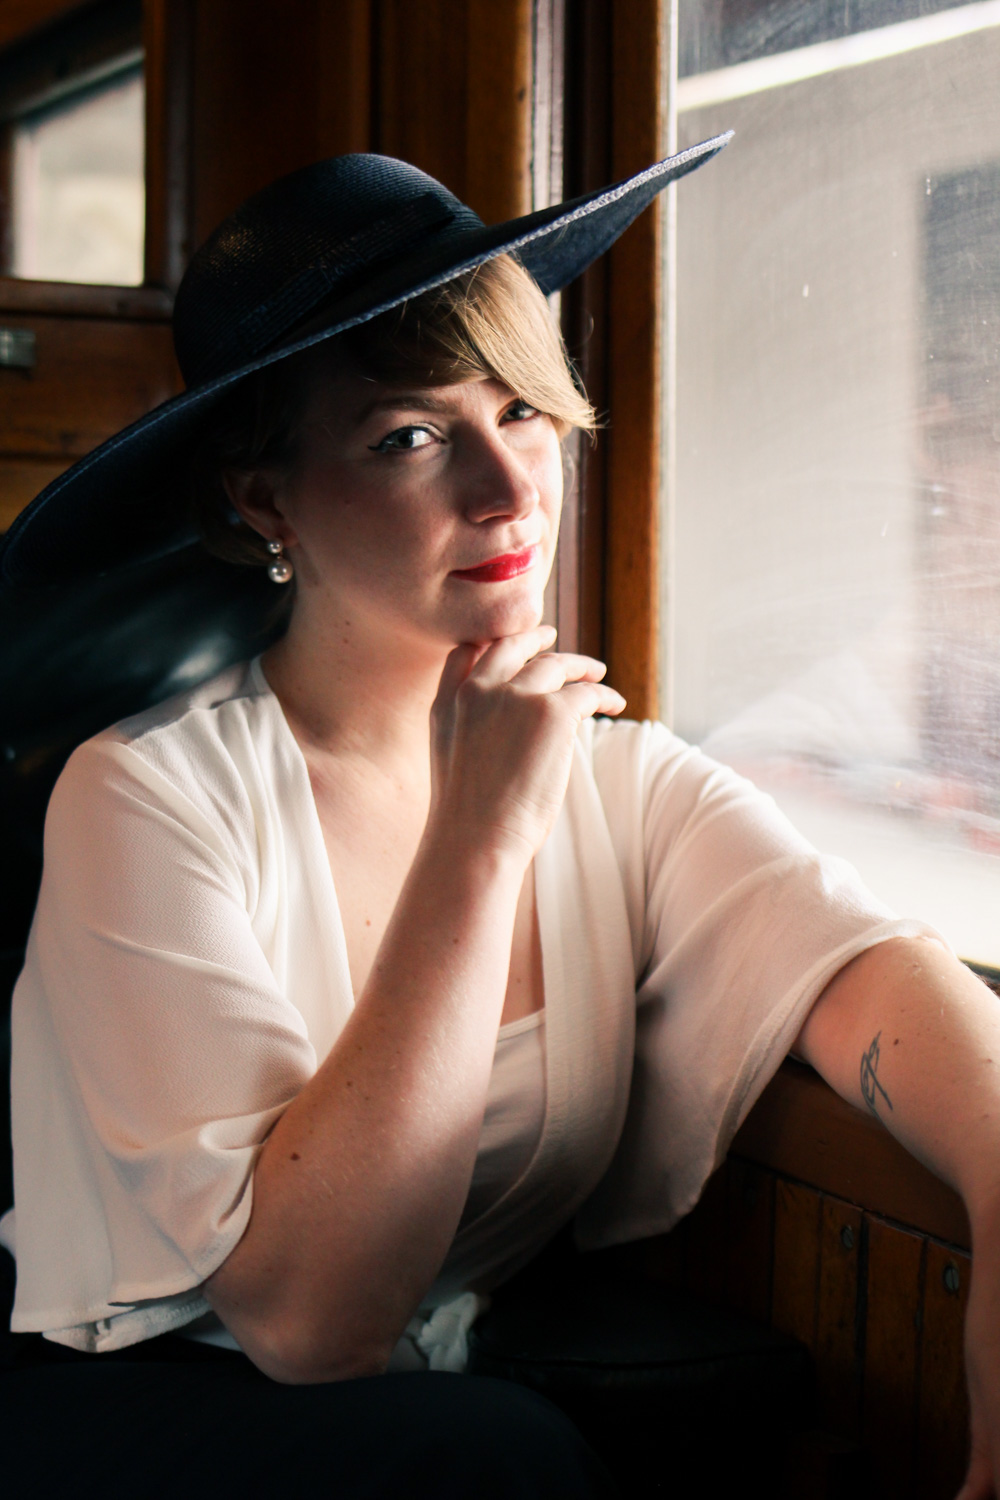 @findingfemme wears navy flares and white loose sleeve blouse with navy broad brimmed vintage hat in Dior 'new look' inspired outfit on the steam train.